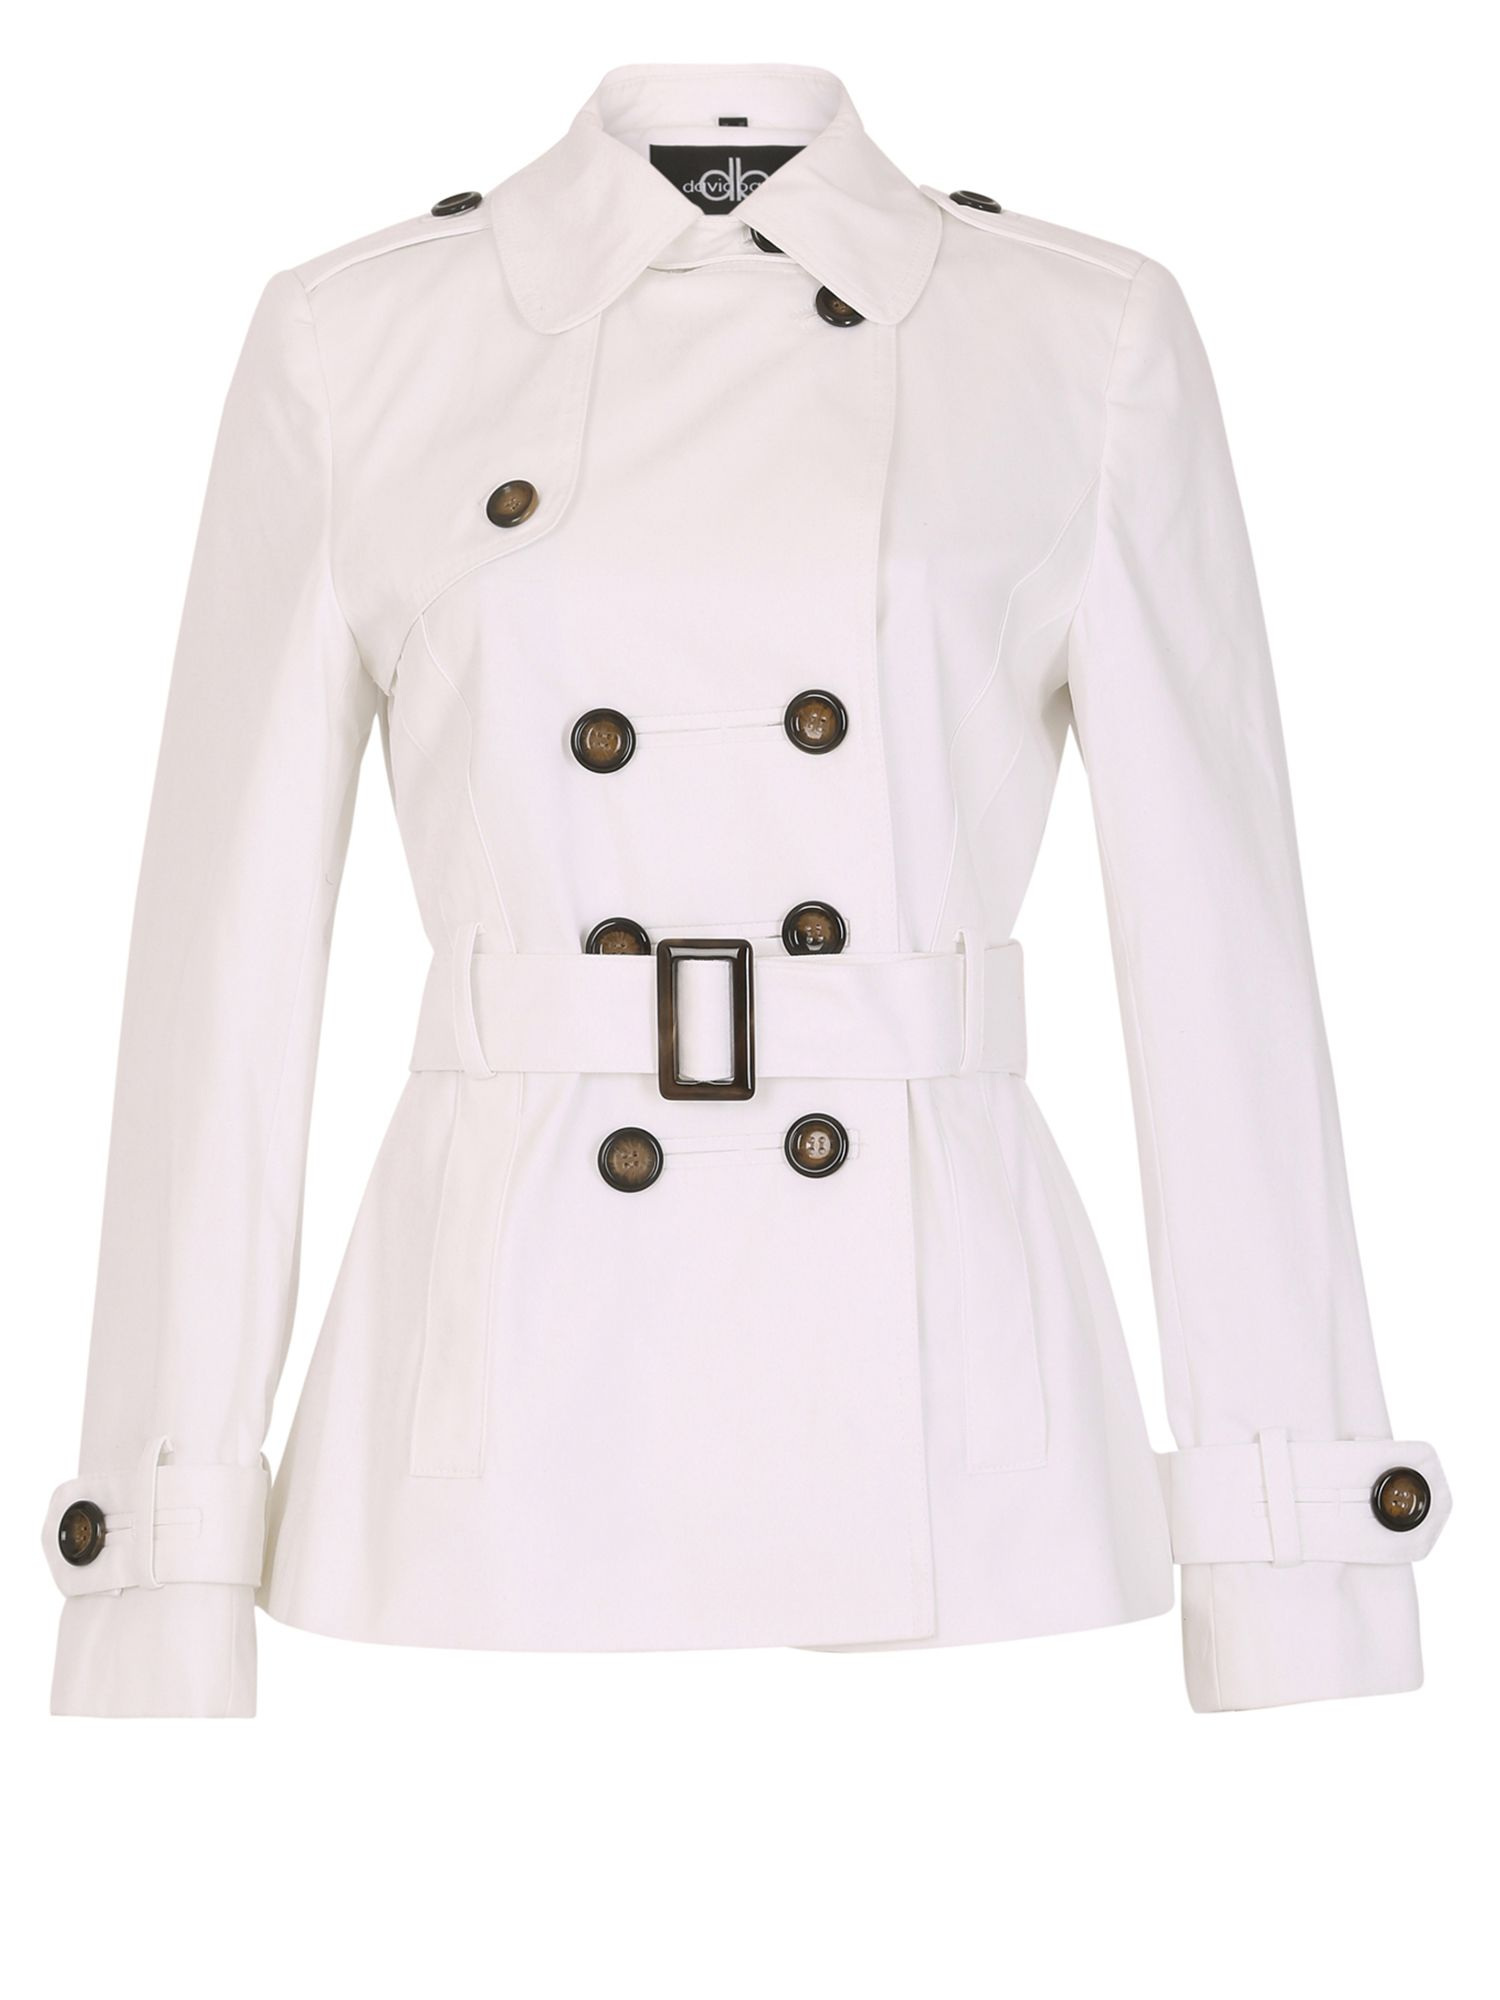 David Barry David Barry DB Belted Trench, White